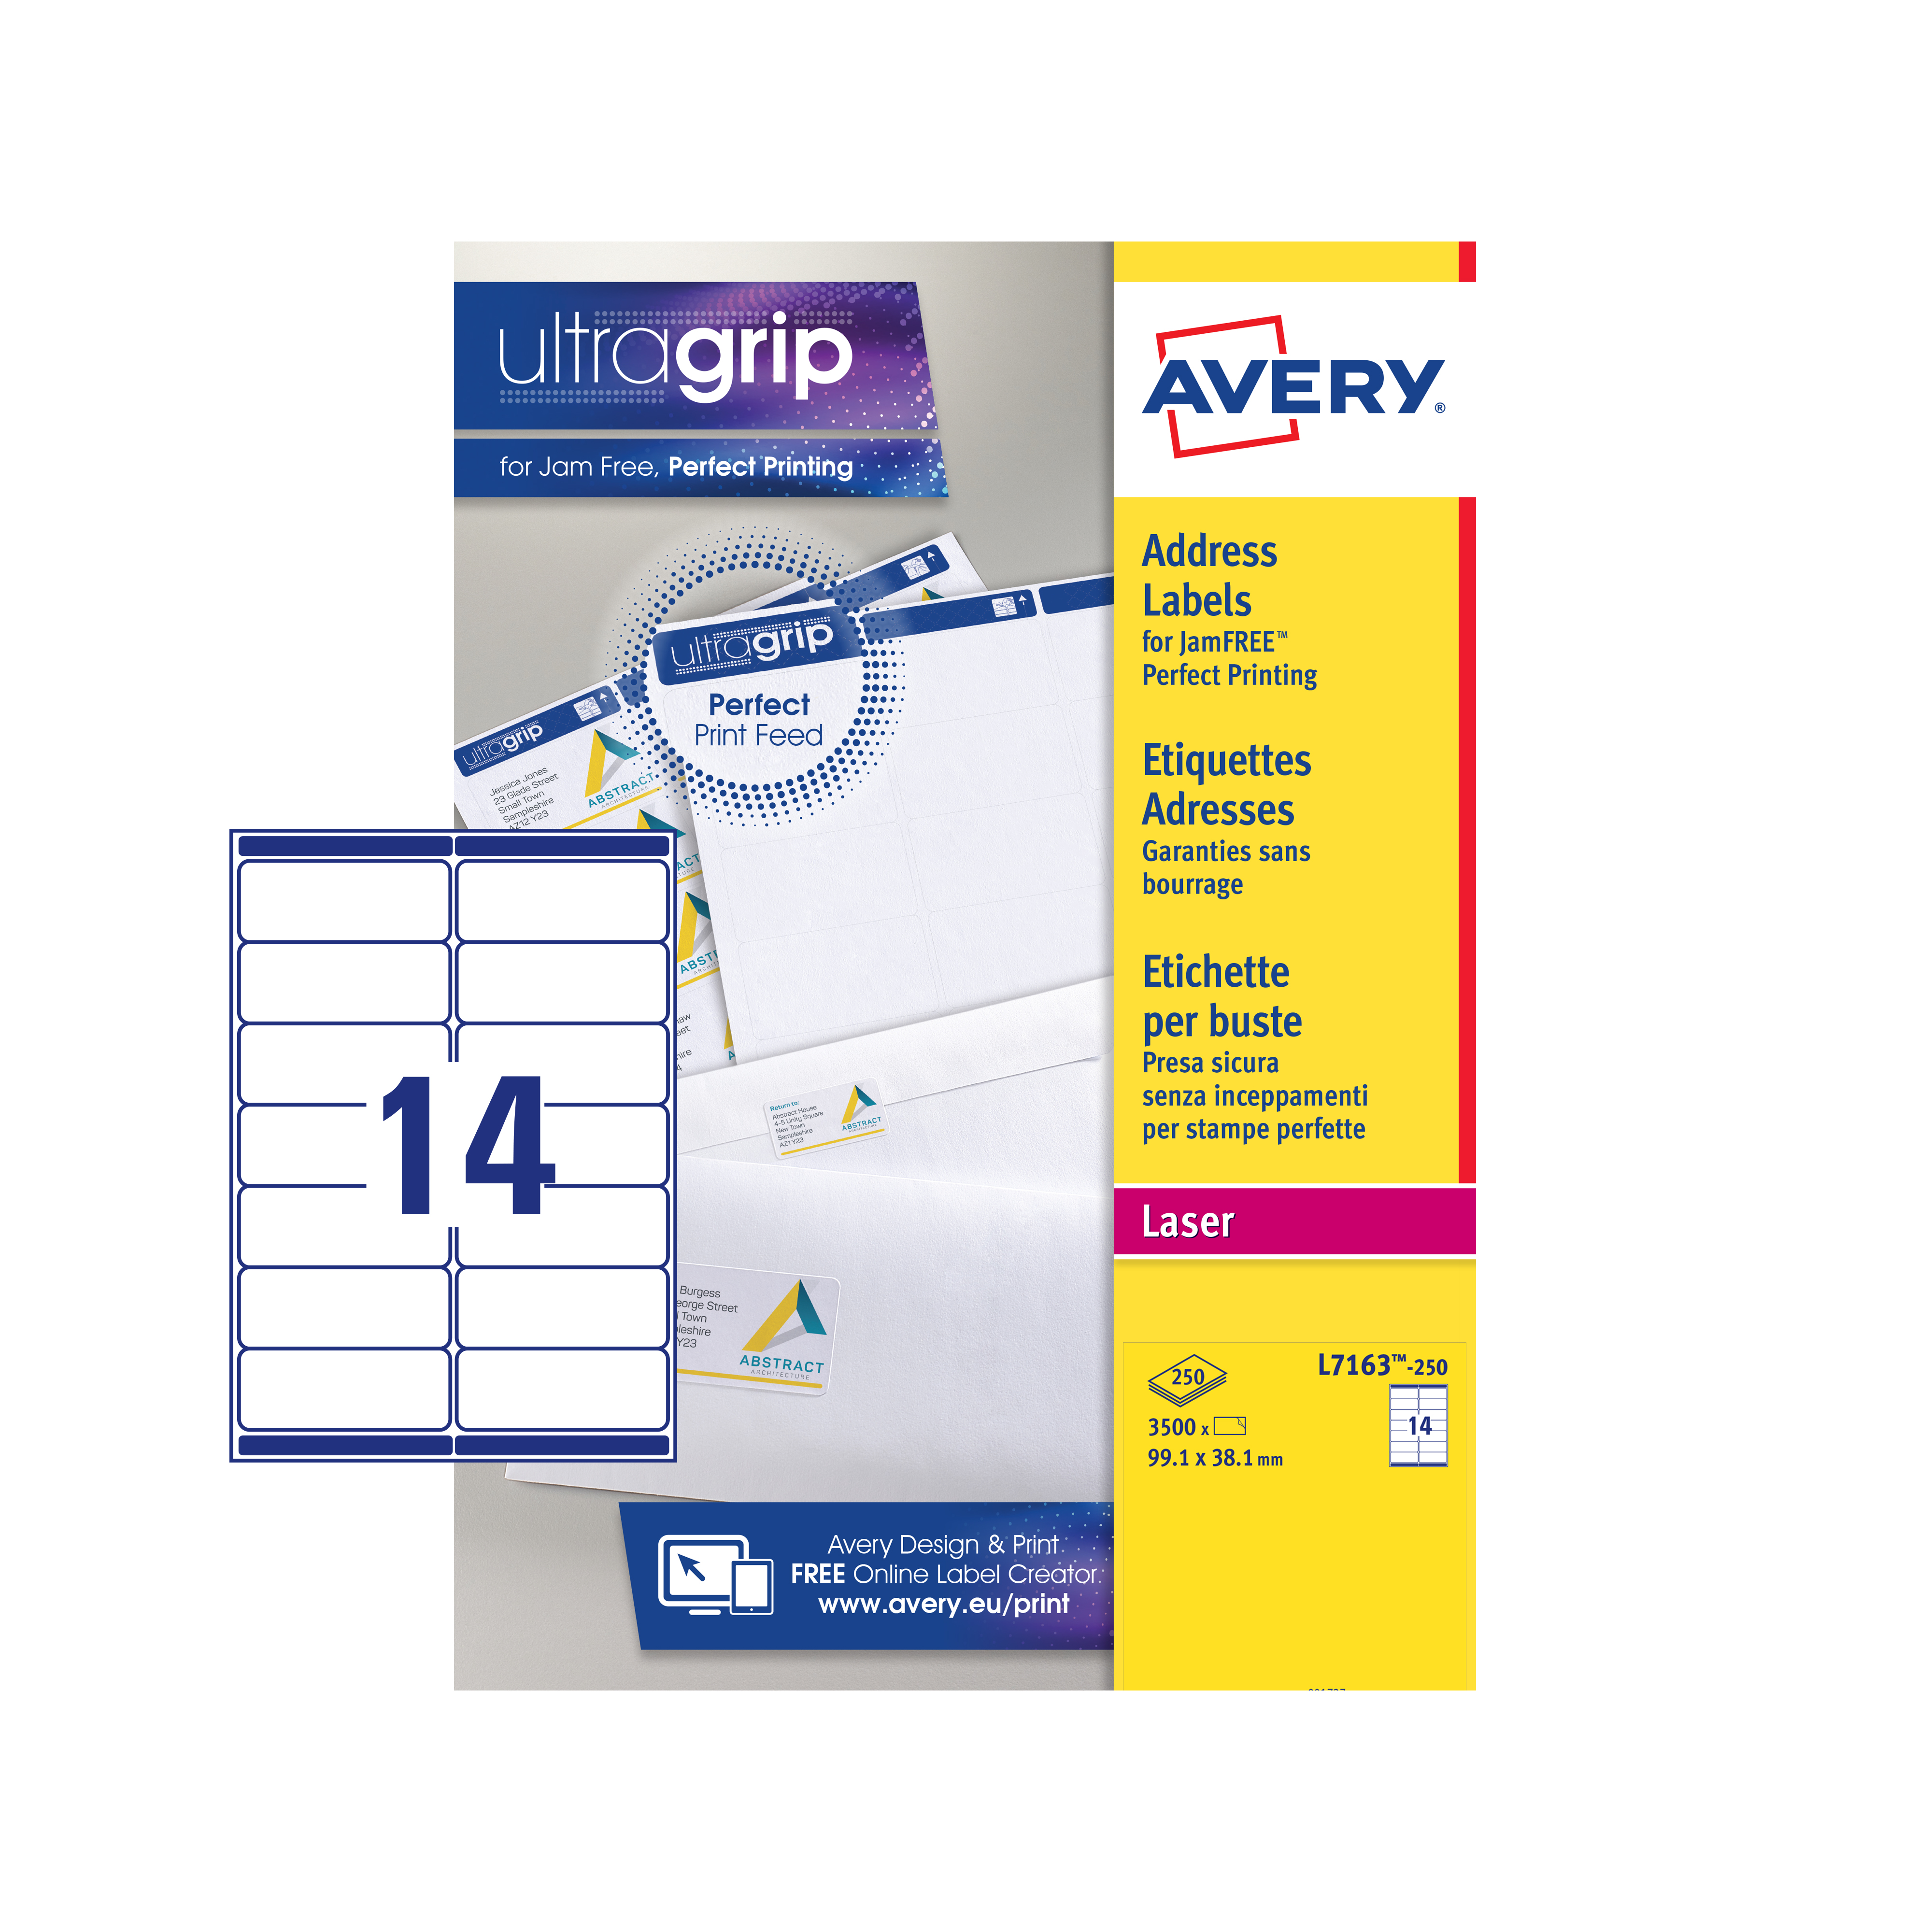 Avery Addressing Labels Laser Jam-free 14 per Sheet 99.1x38.1mm White Ref L7163-250 3500 Labels